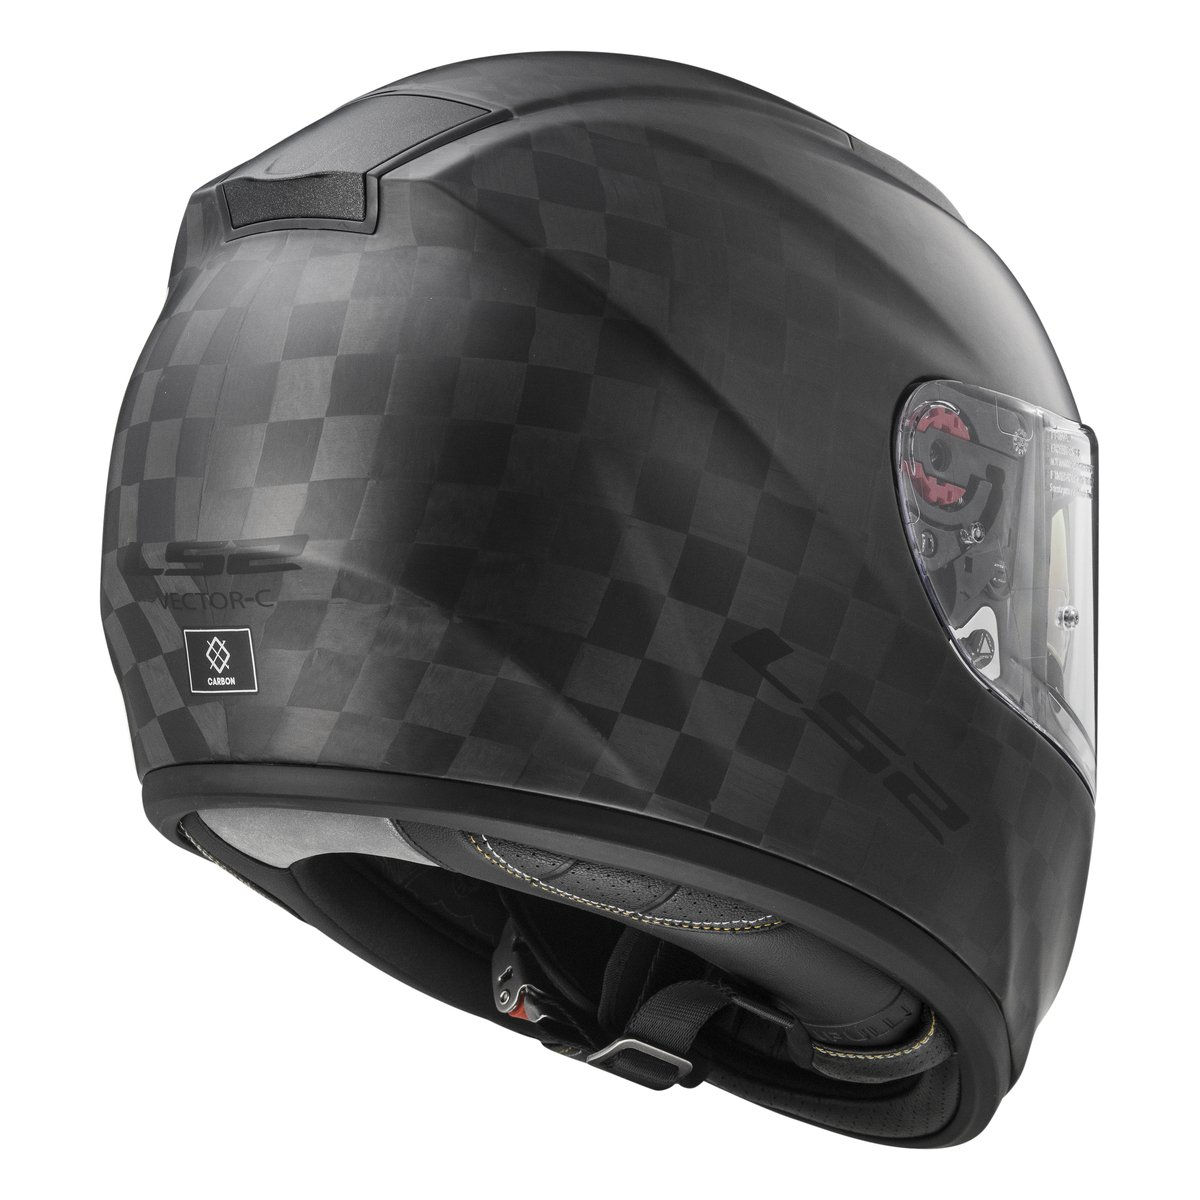 casco ls2 vector c solid matt carbon